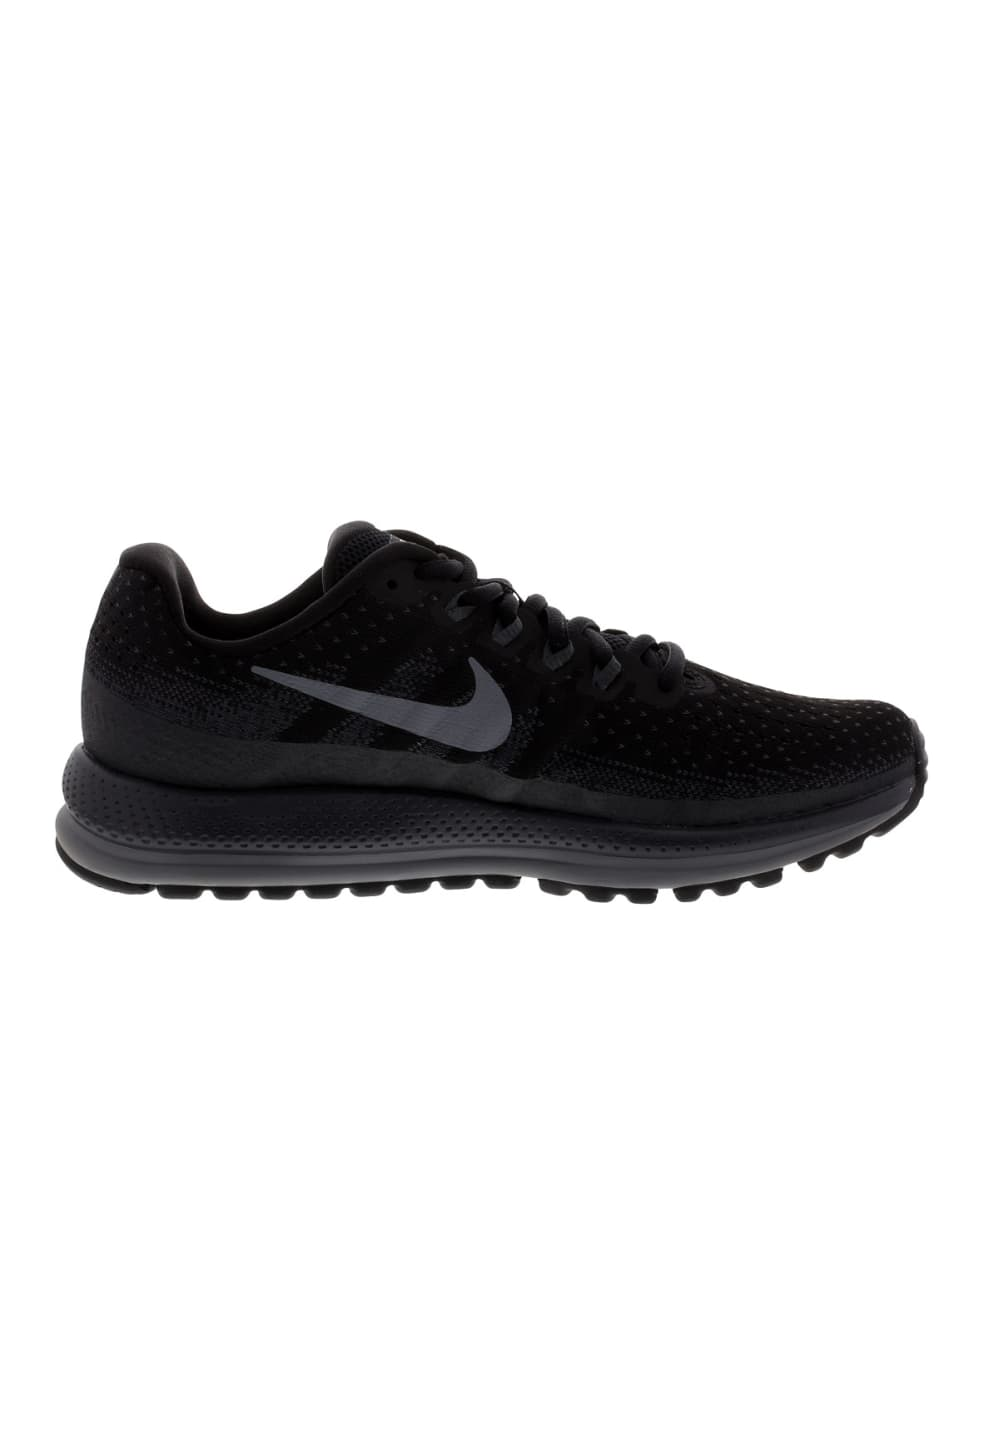 premium selection 44338 80913 Nike Air Zoom Vomero 13 - Running shoes for Women - Black   21RUN